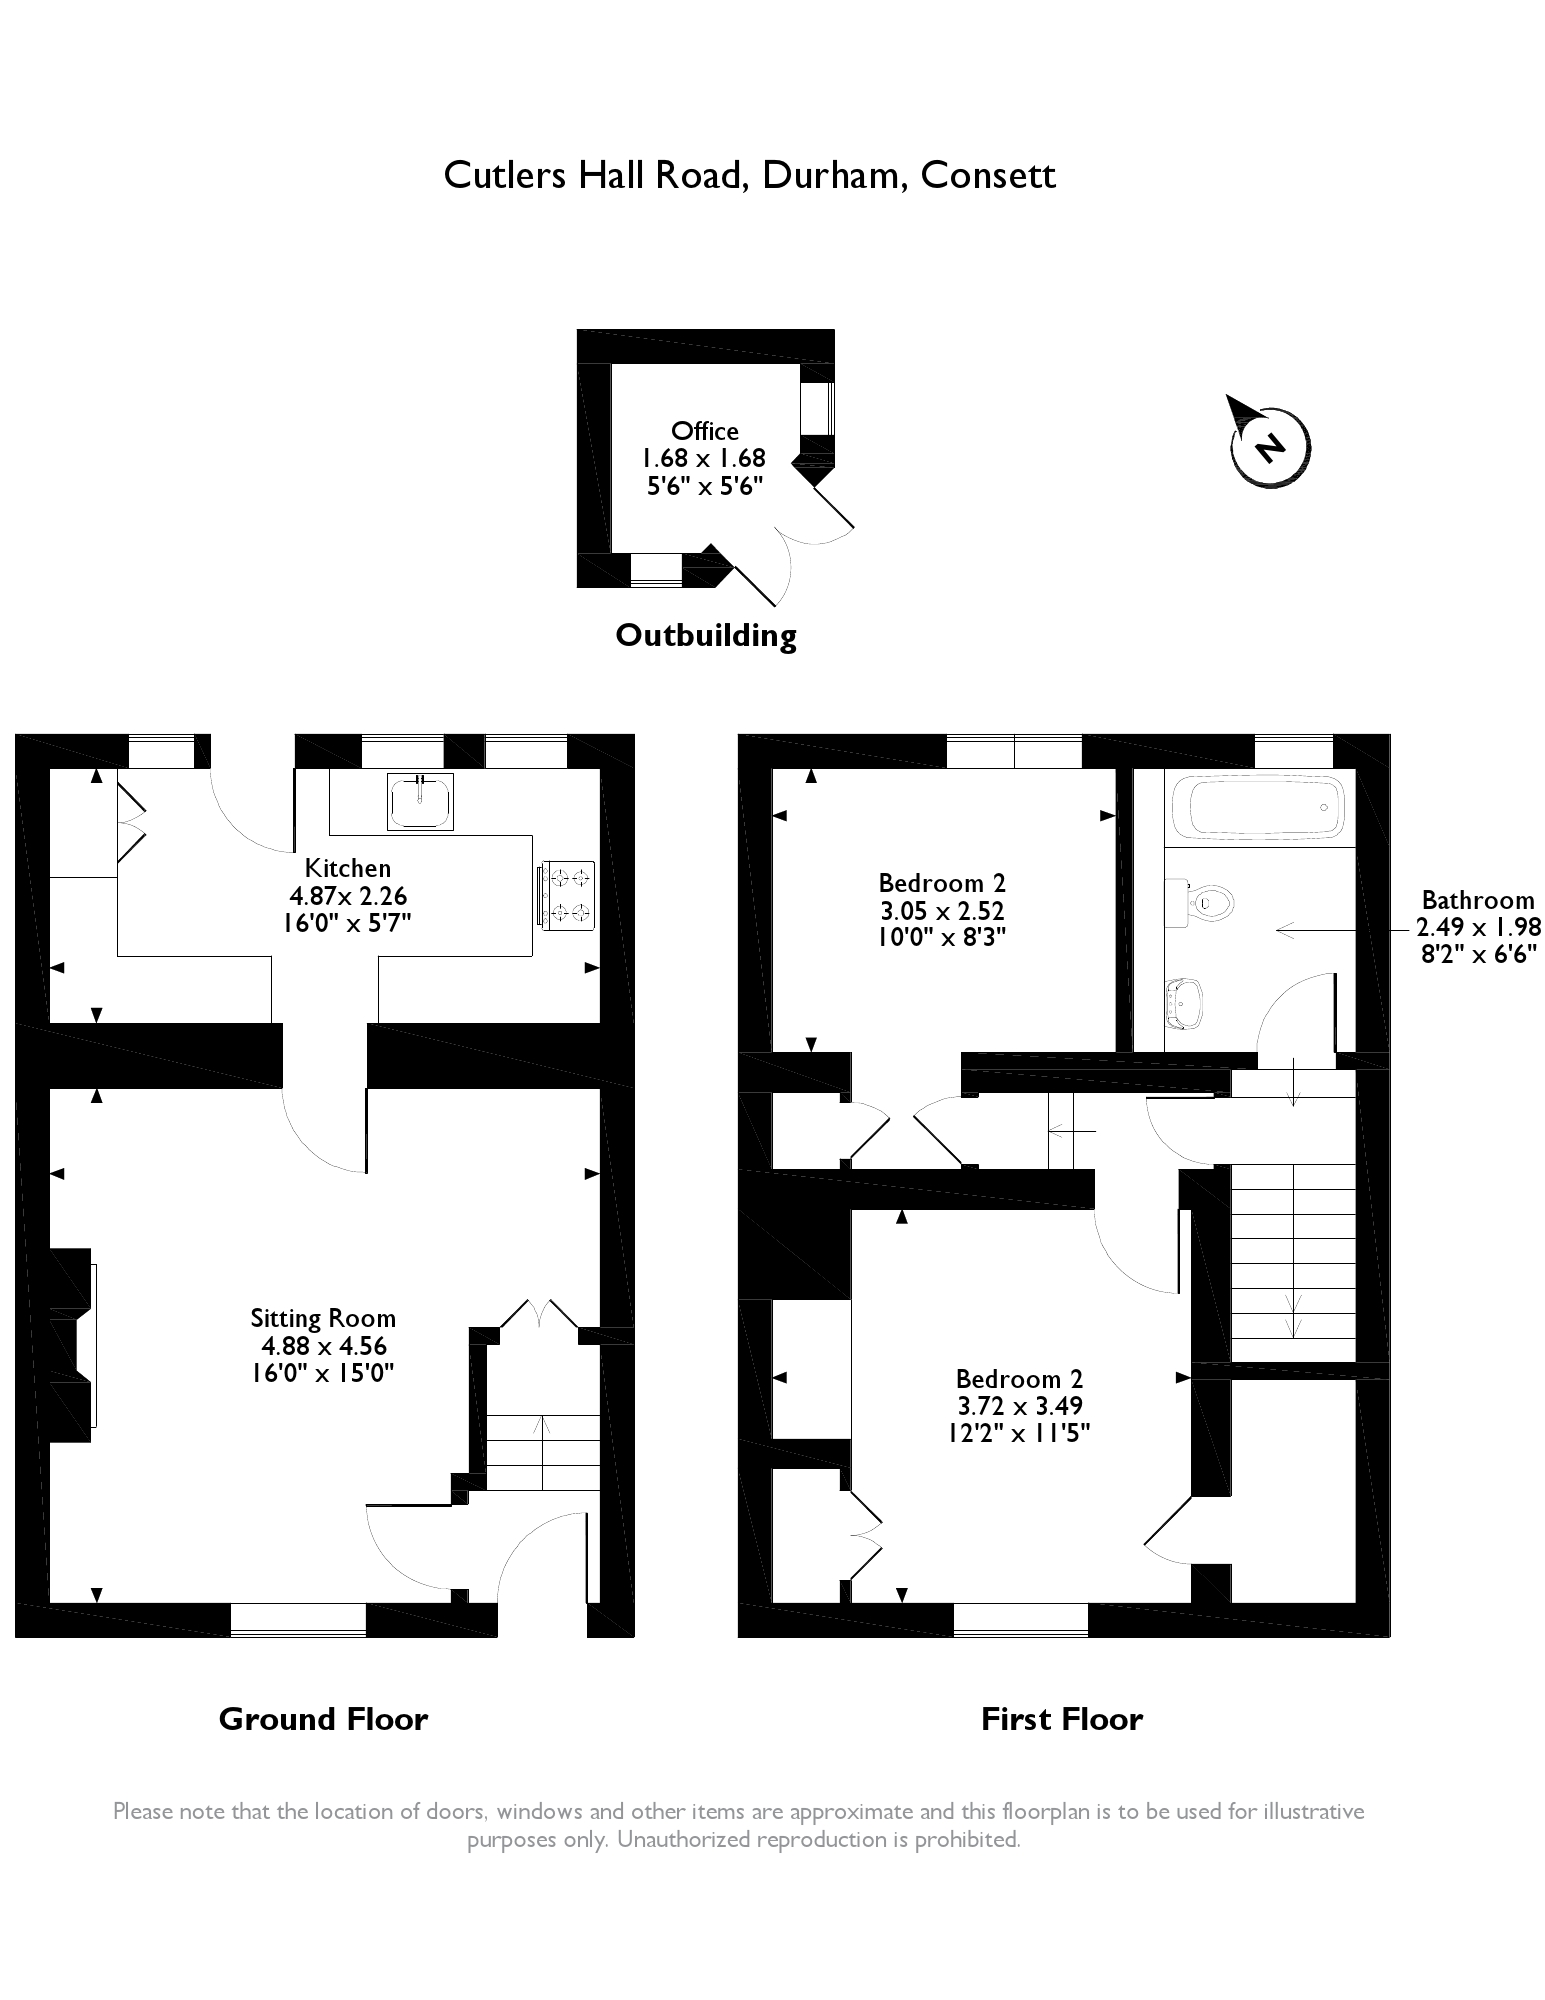 Cutlers Hall Road,Consett, Durham,DH8 floor plan